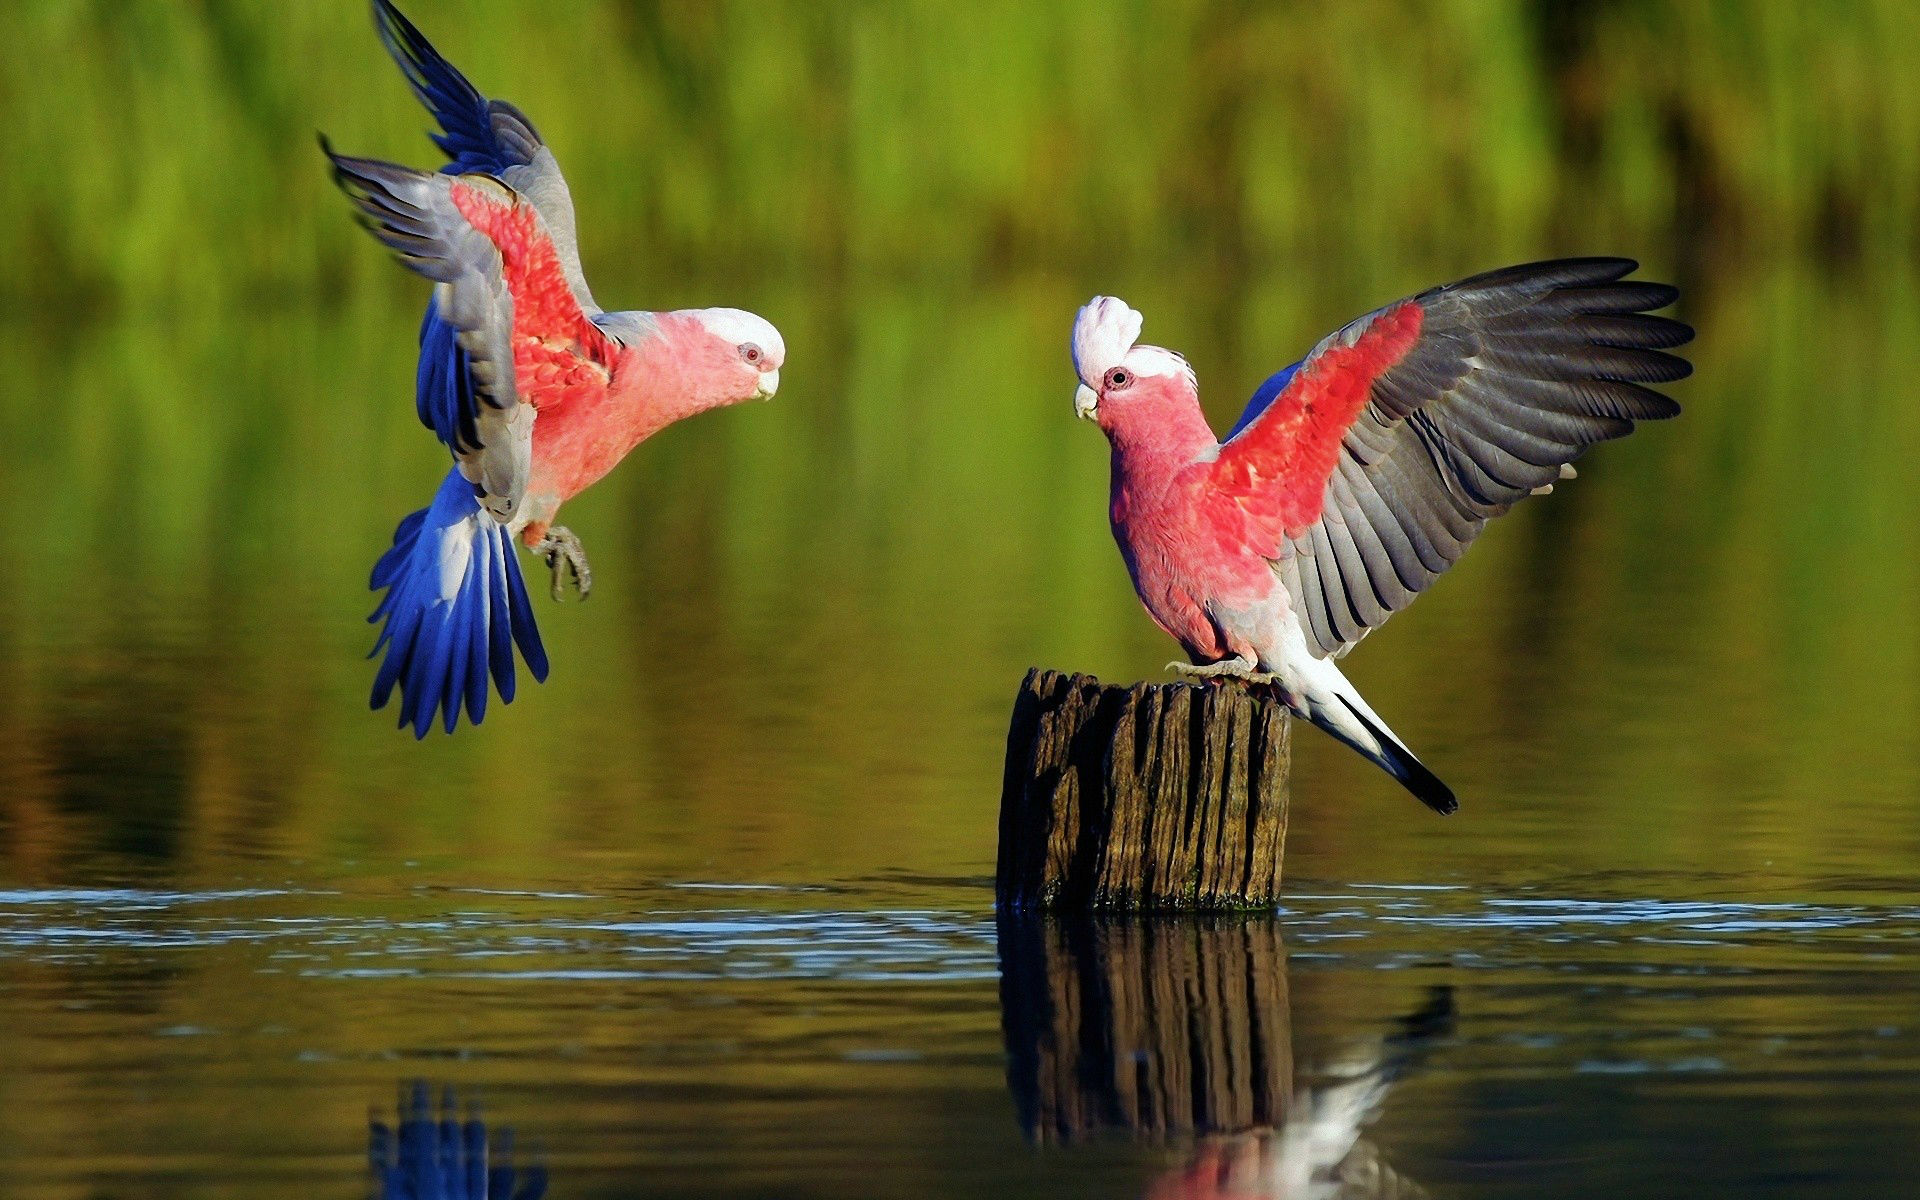 137 parrot hd wallpapers | background images - wallpaper abyss